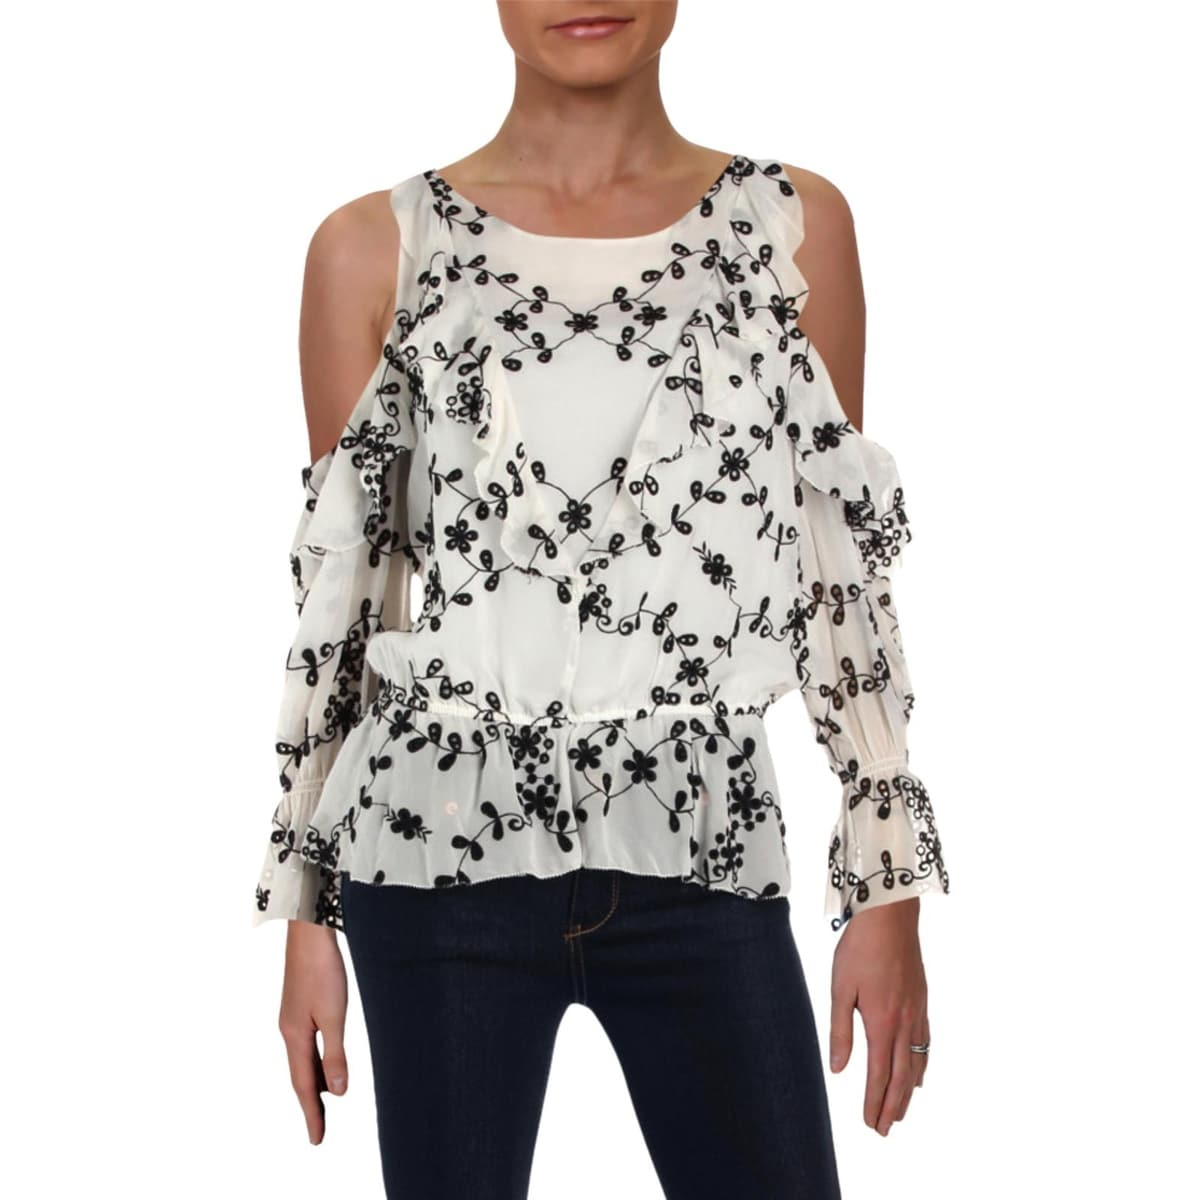 205f287b38c0 Joie Tops | Find Great Women's Clothing Deals Shopping at Overstock